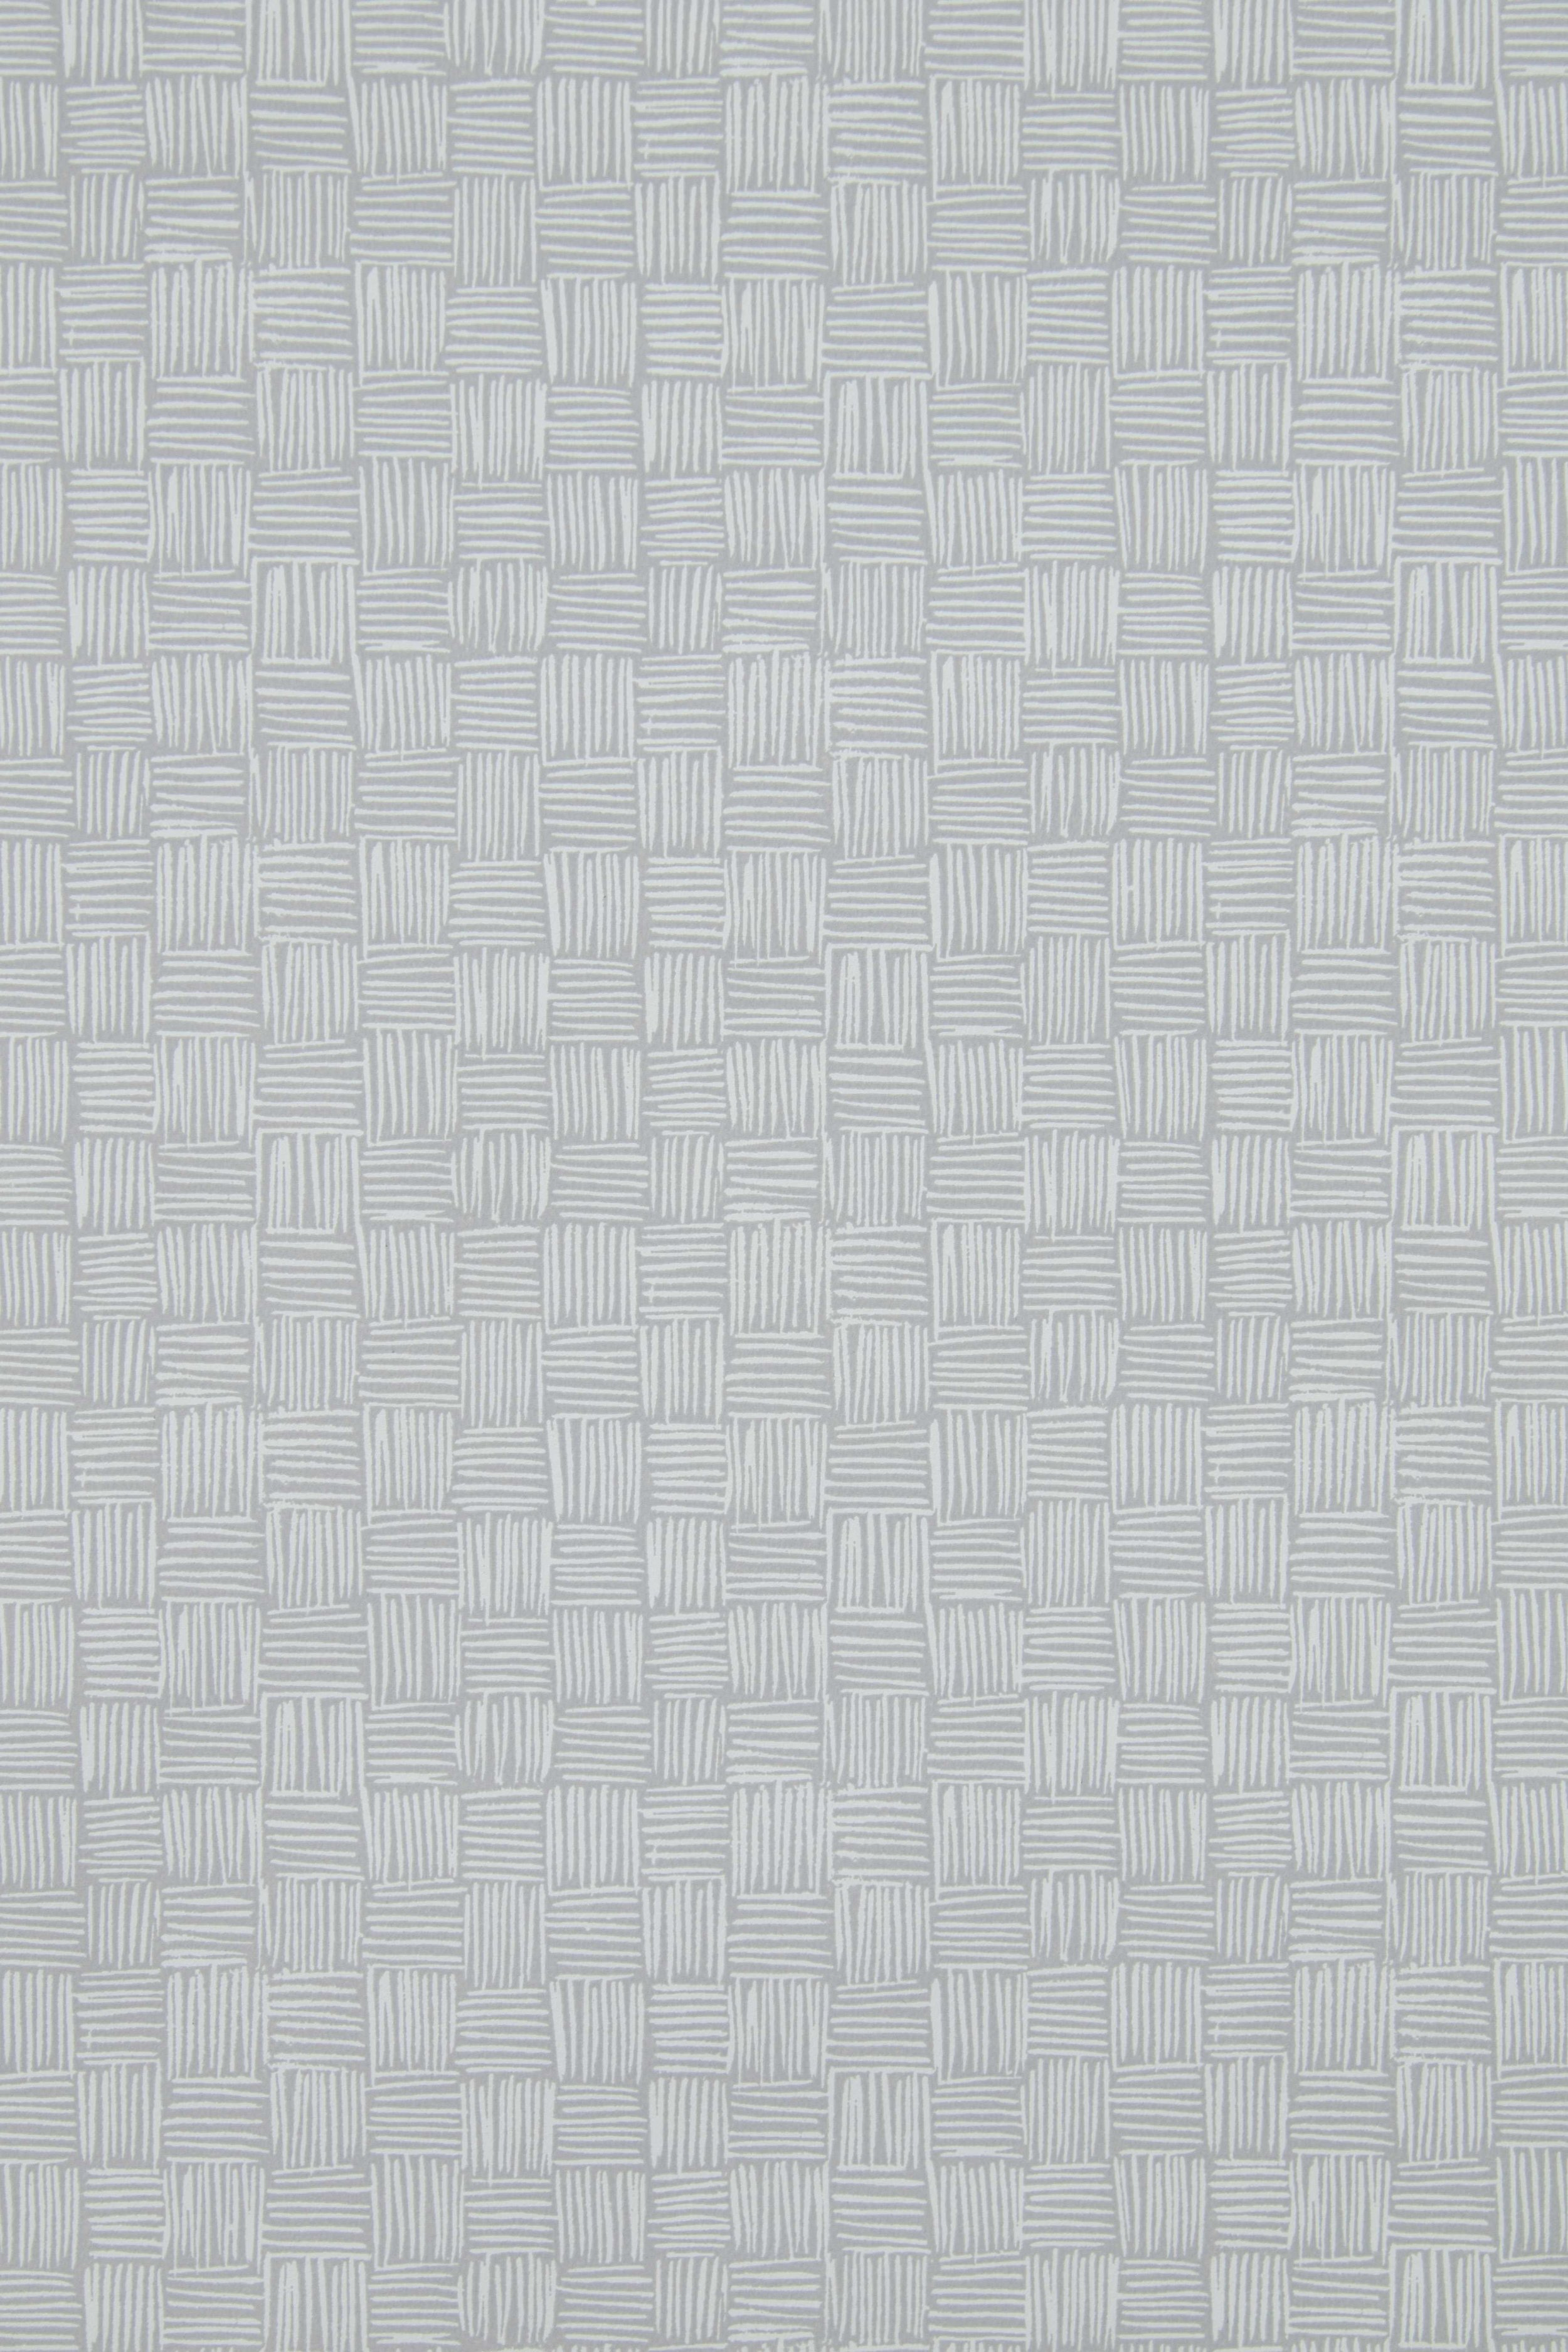 Woven in French Grey, SL203-01